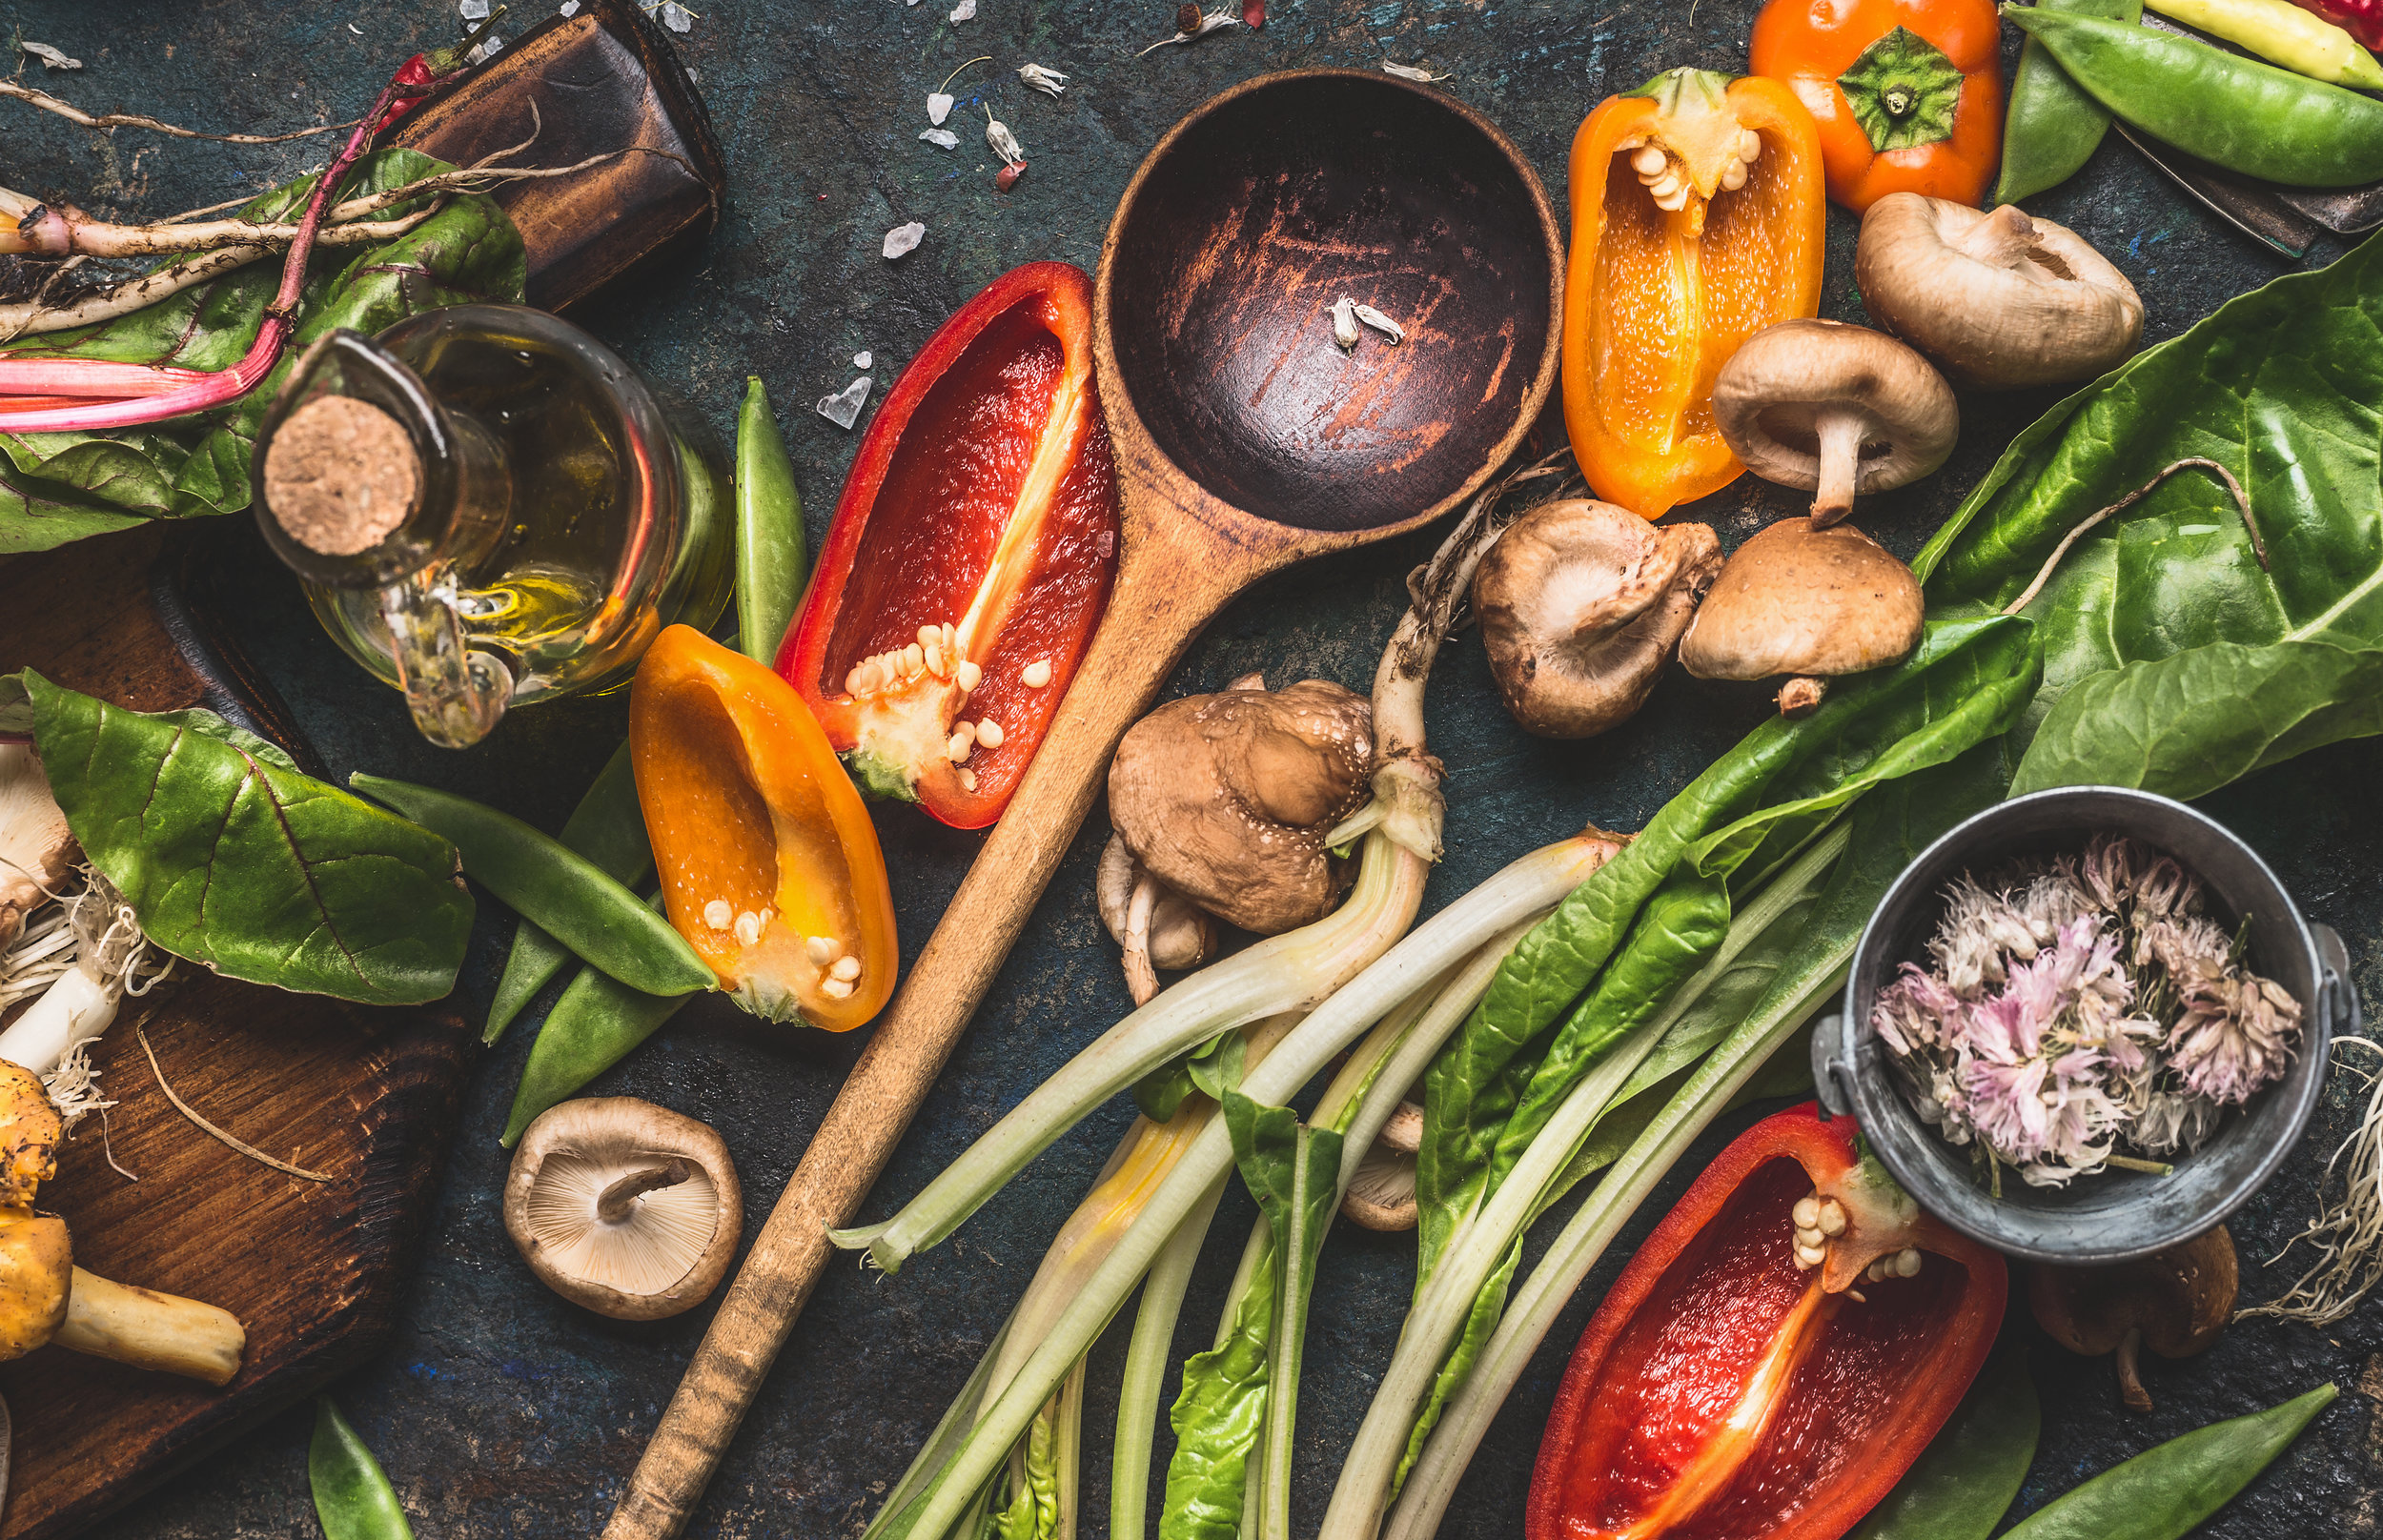 Vegan lifestyle - be environmentally friendly and save money by reducing kitchen waste